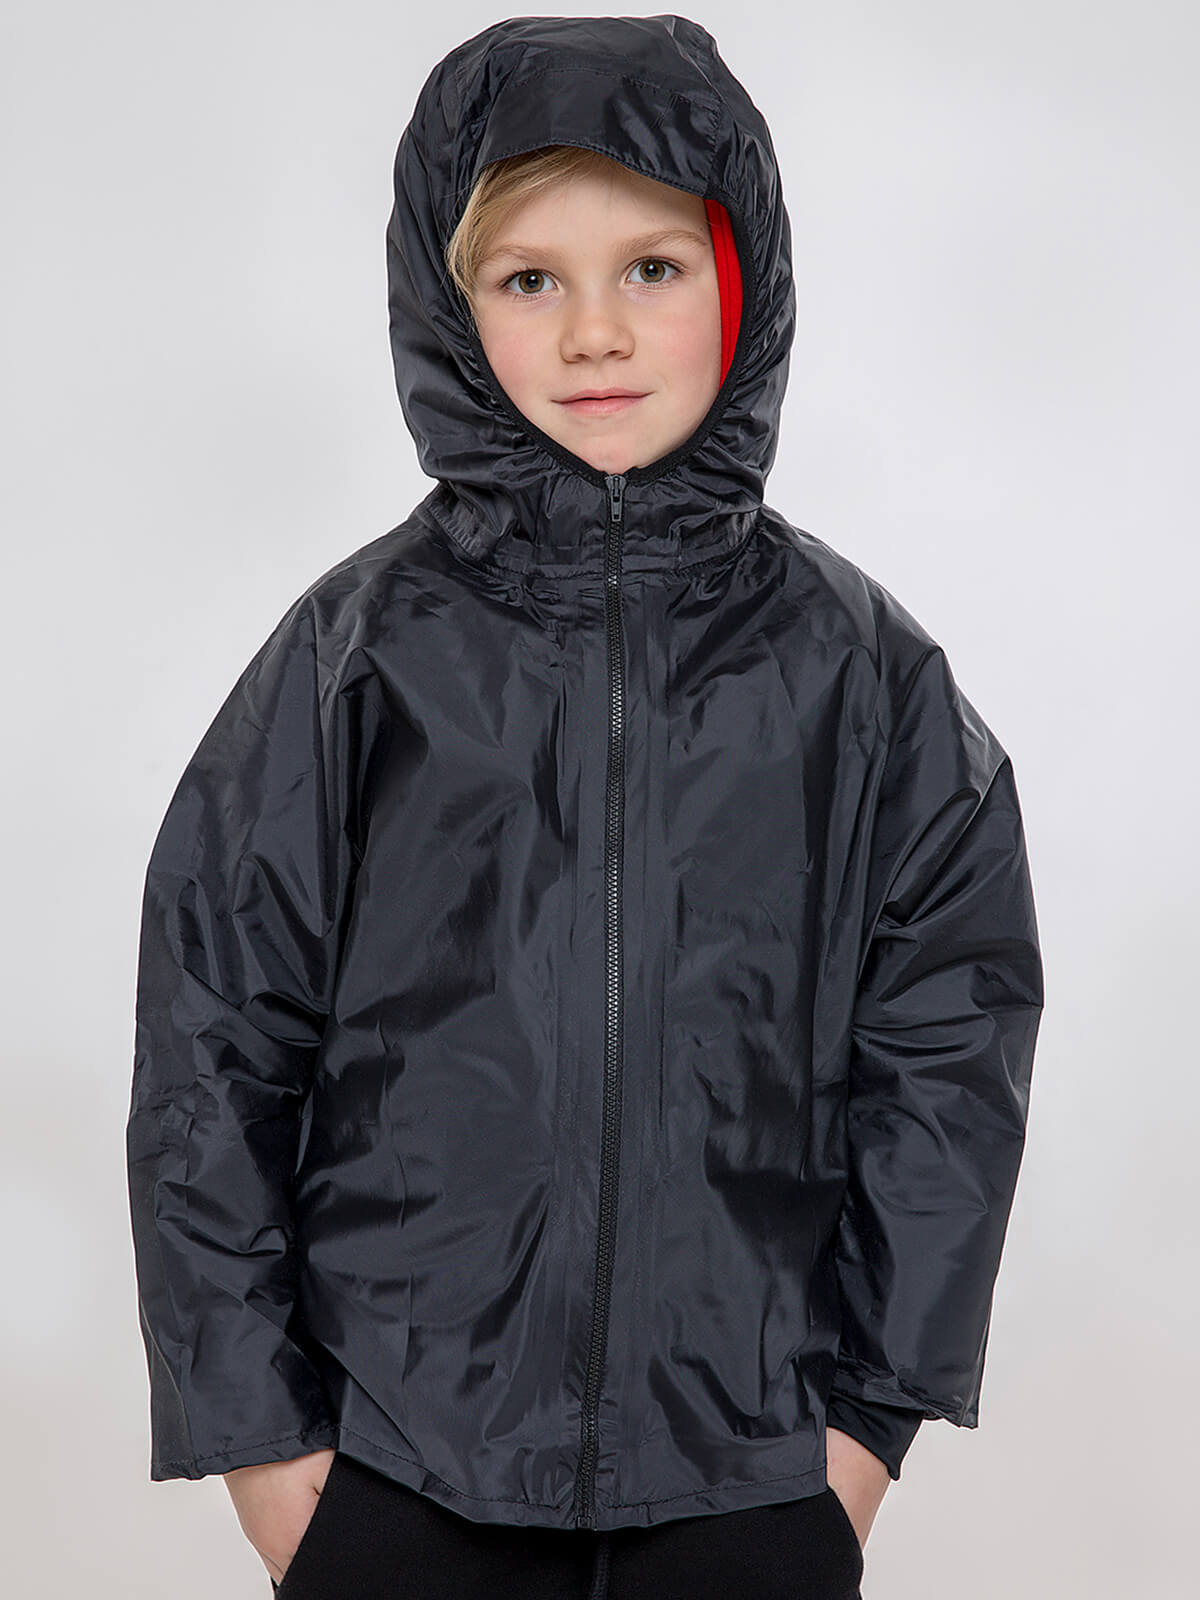 Kids Hoodie Syla. Color red.  Material of the raincoat: 100% polyester.